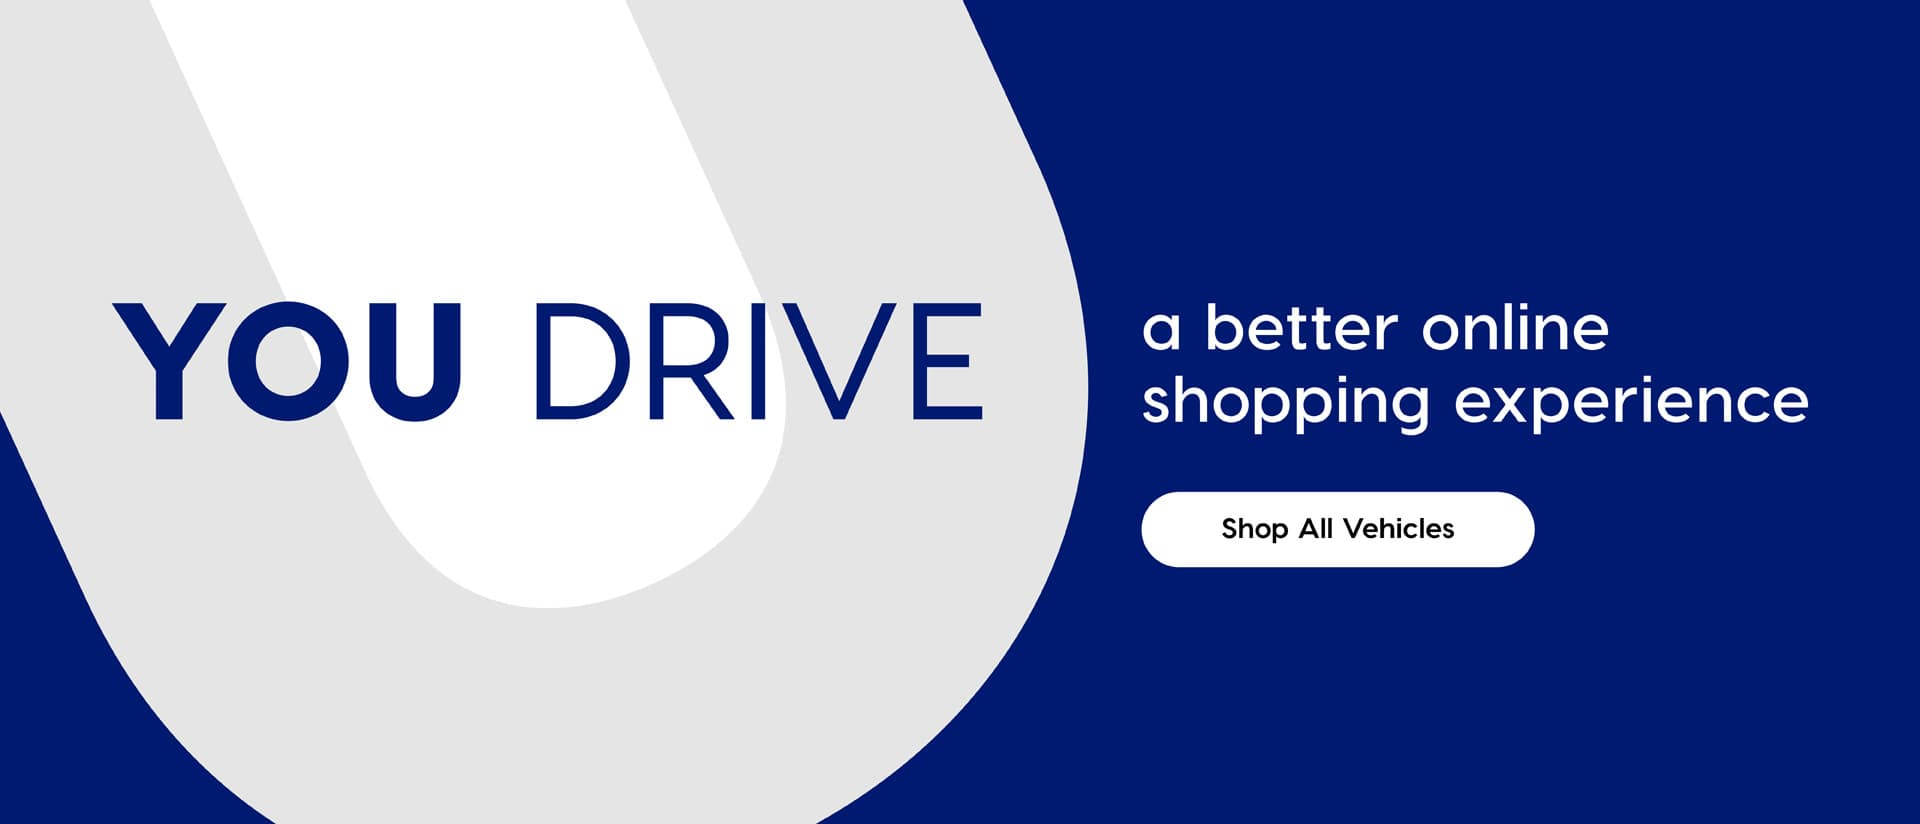 You Drive a better online shopping experience.